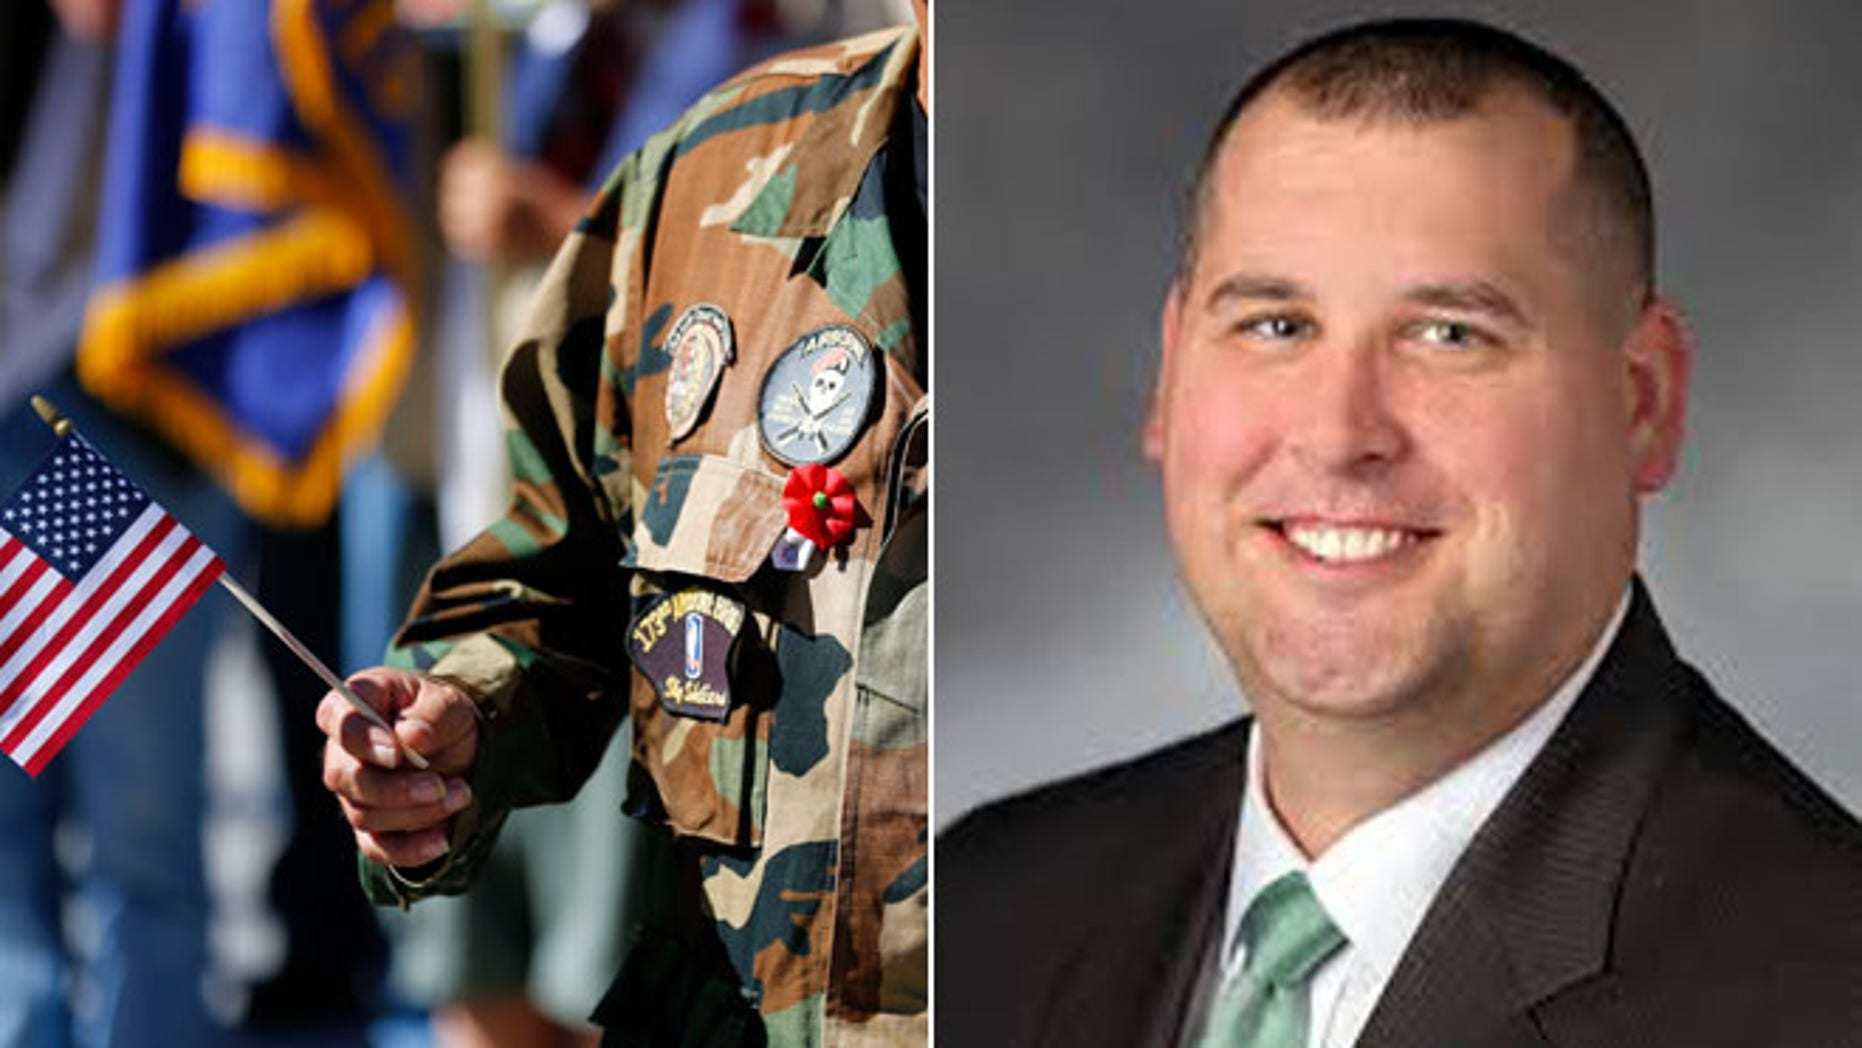 This composite image shows Washington state Rep. Graham Hunt, right.